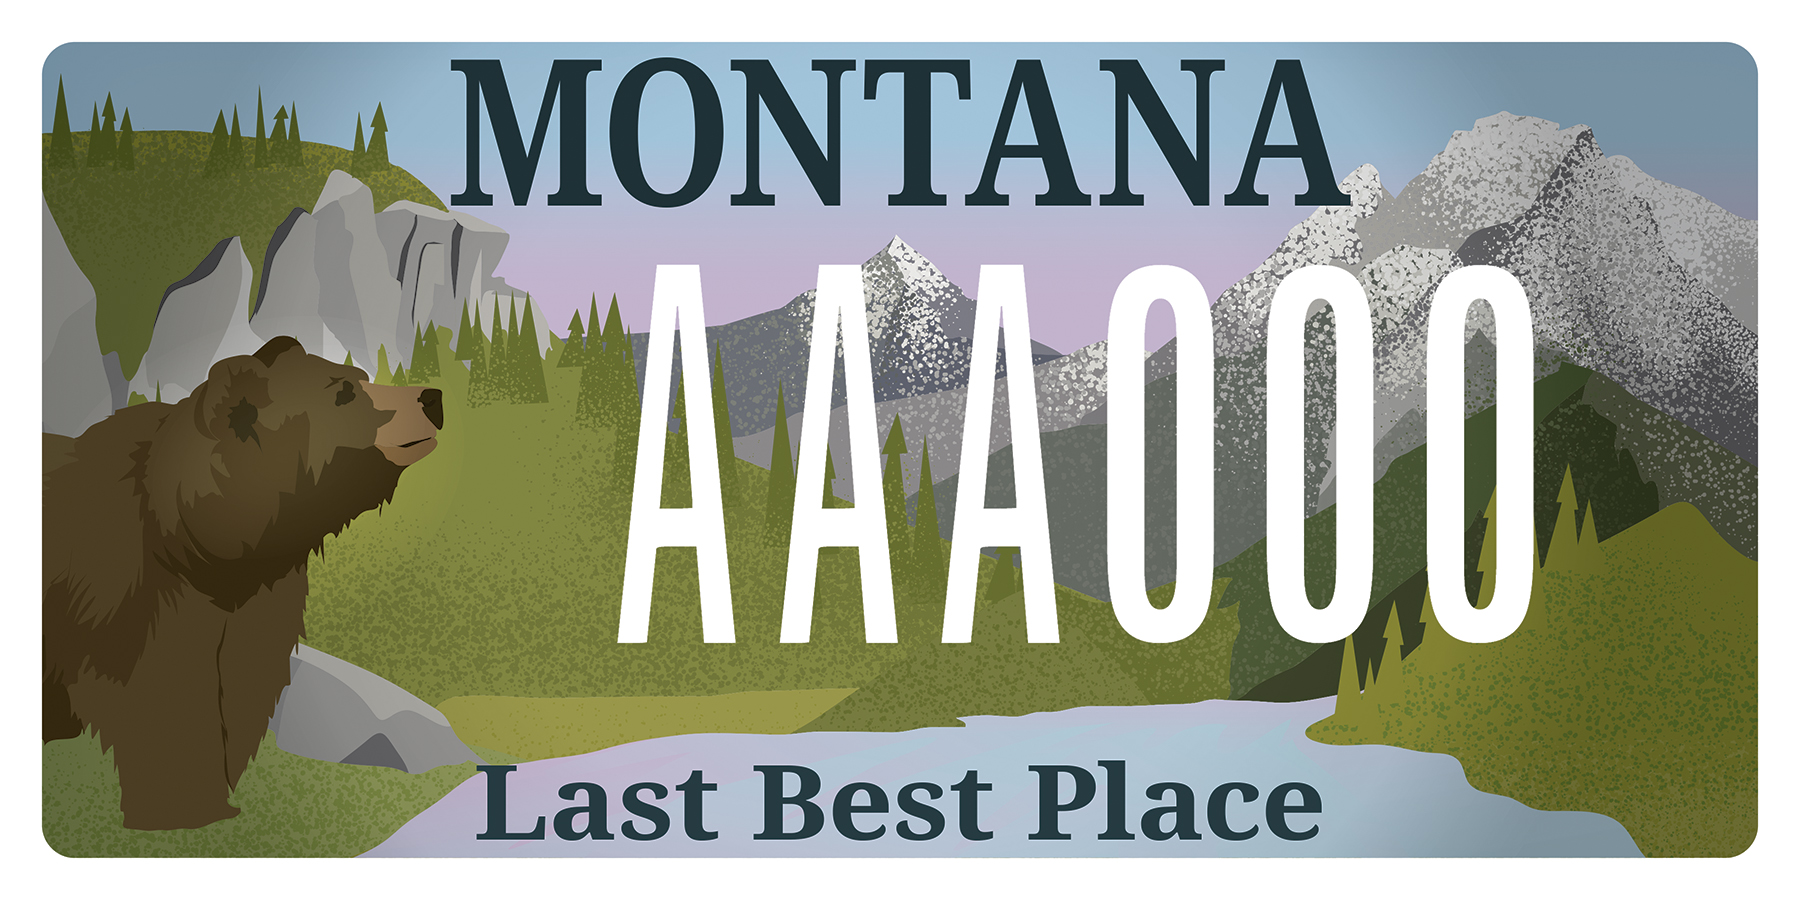 Montana License Plate,Graphic Design, and Illustration by Nikki Simon in Helena, Montana. Save the Smith River, MEIC.